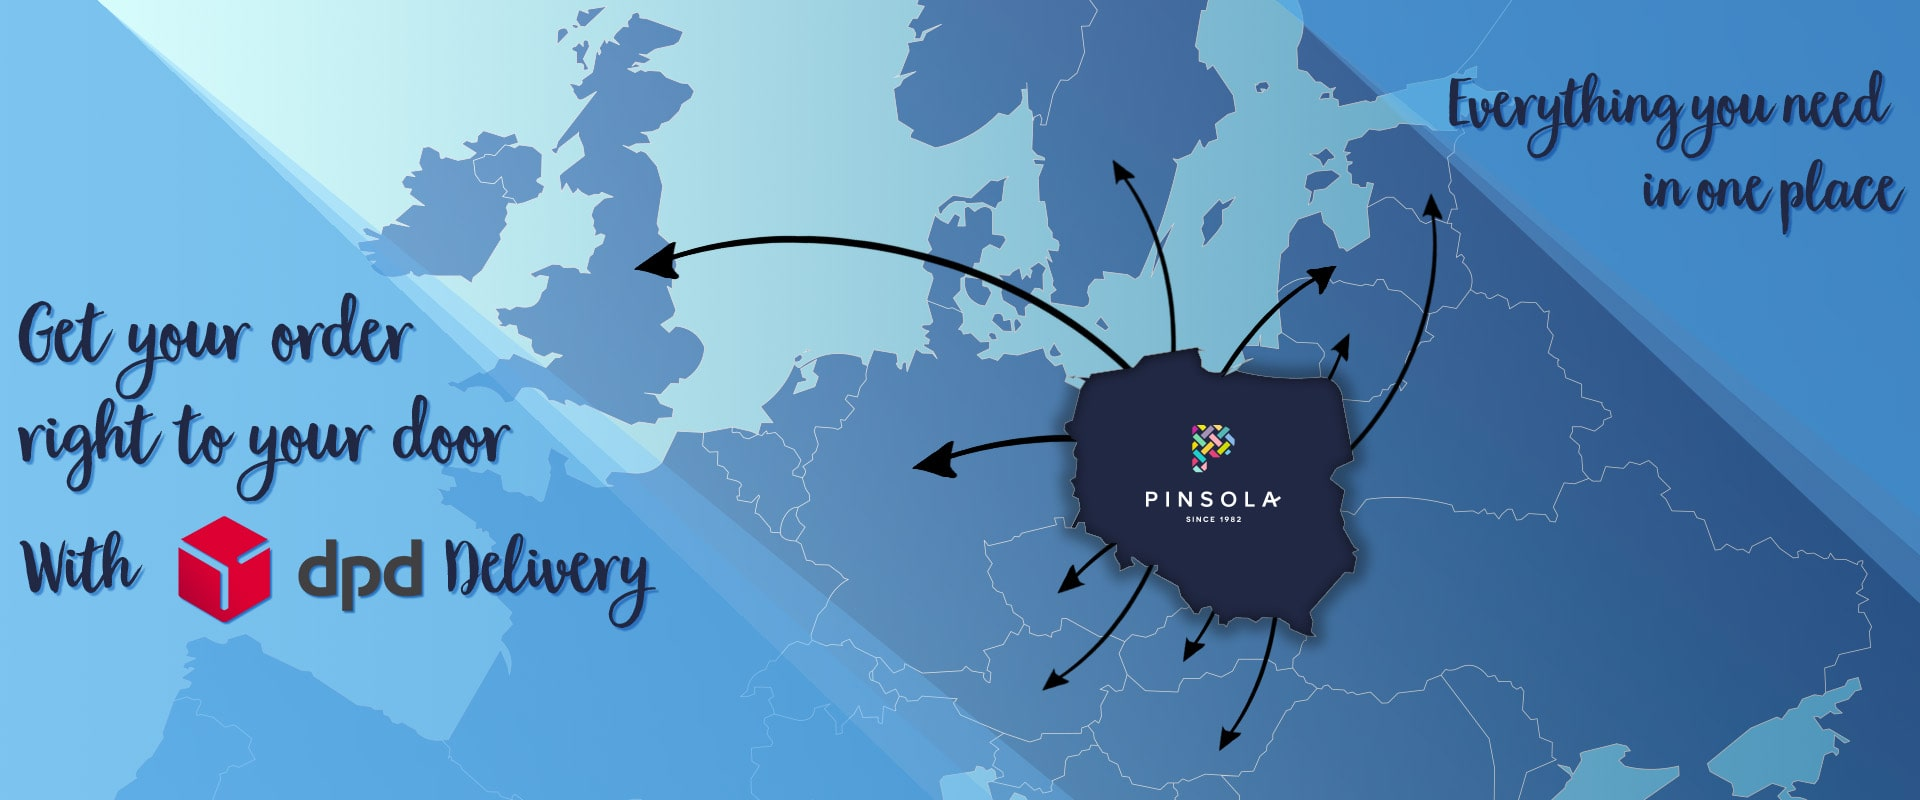 DPD shipping in pinsola - fast and reliable